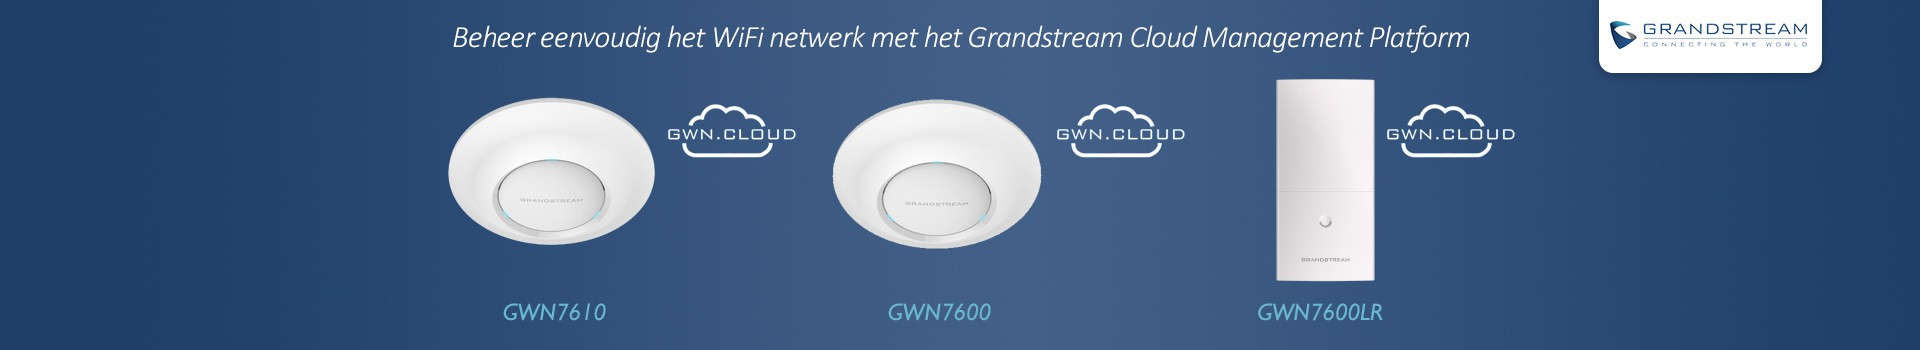 GWN-cloud Grandstream